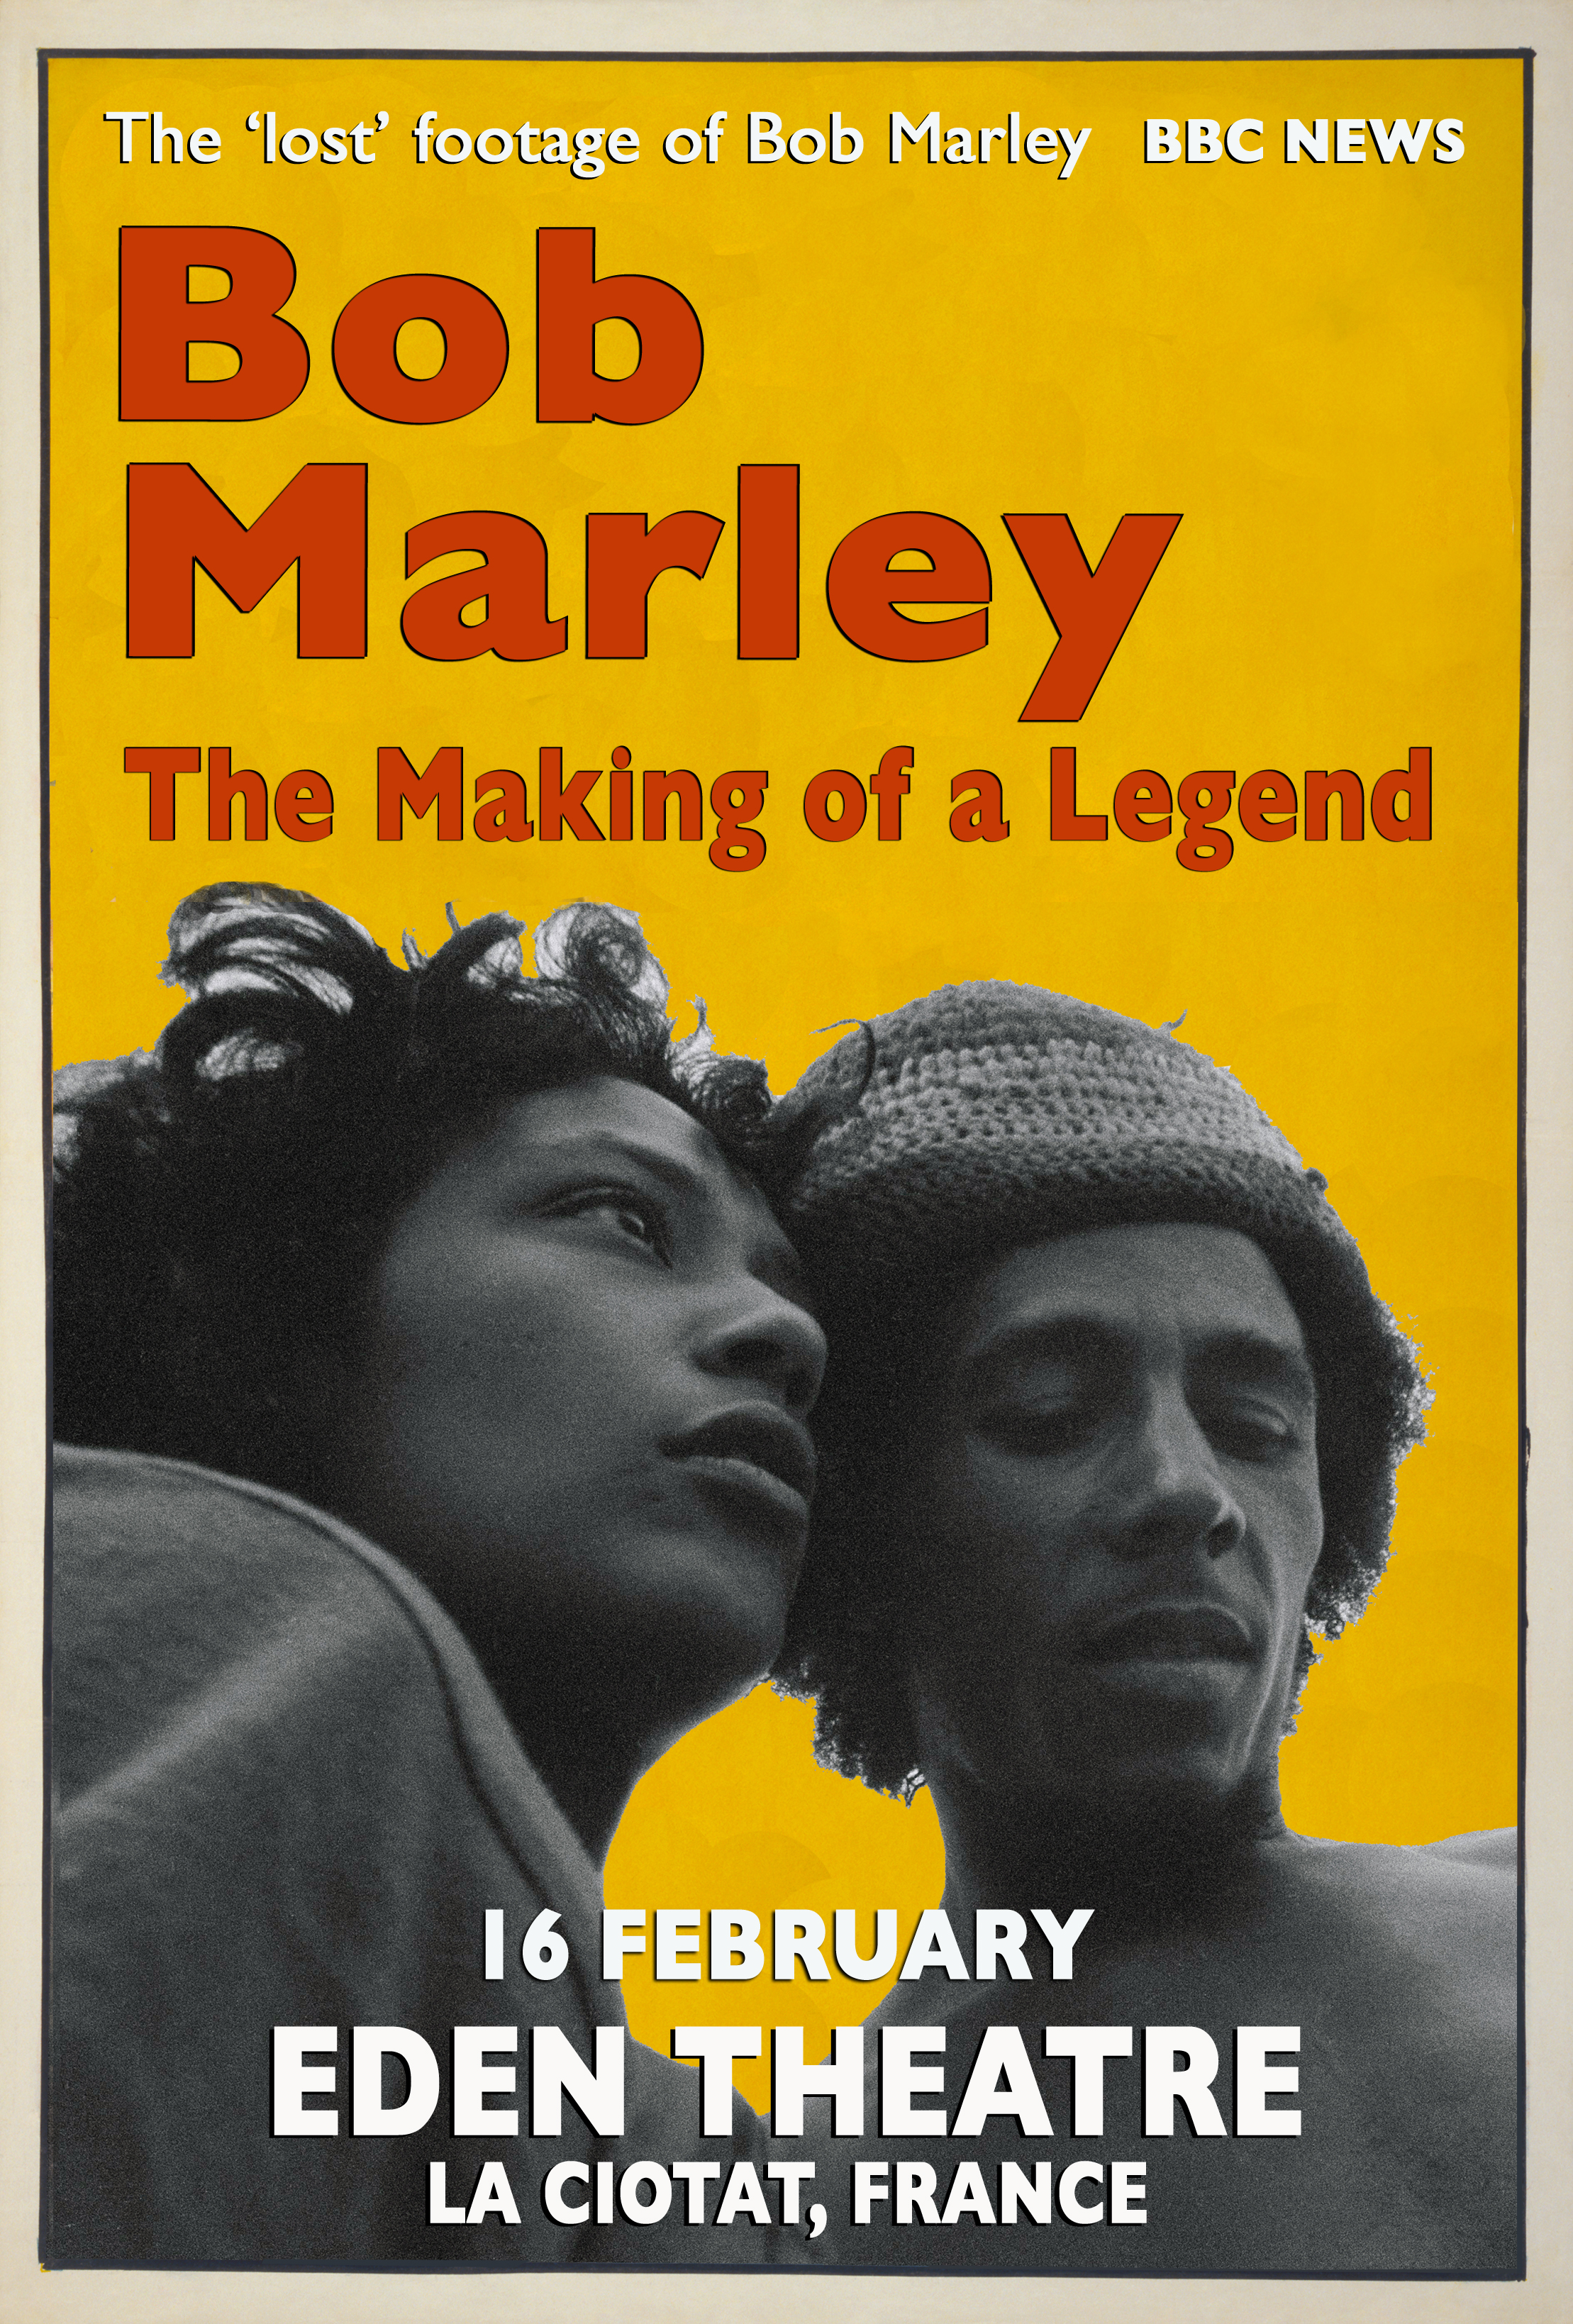 Bob Marley Le film The Making Legend